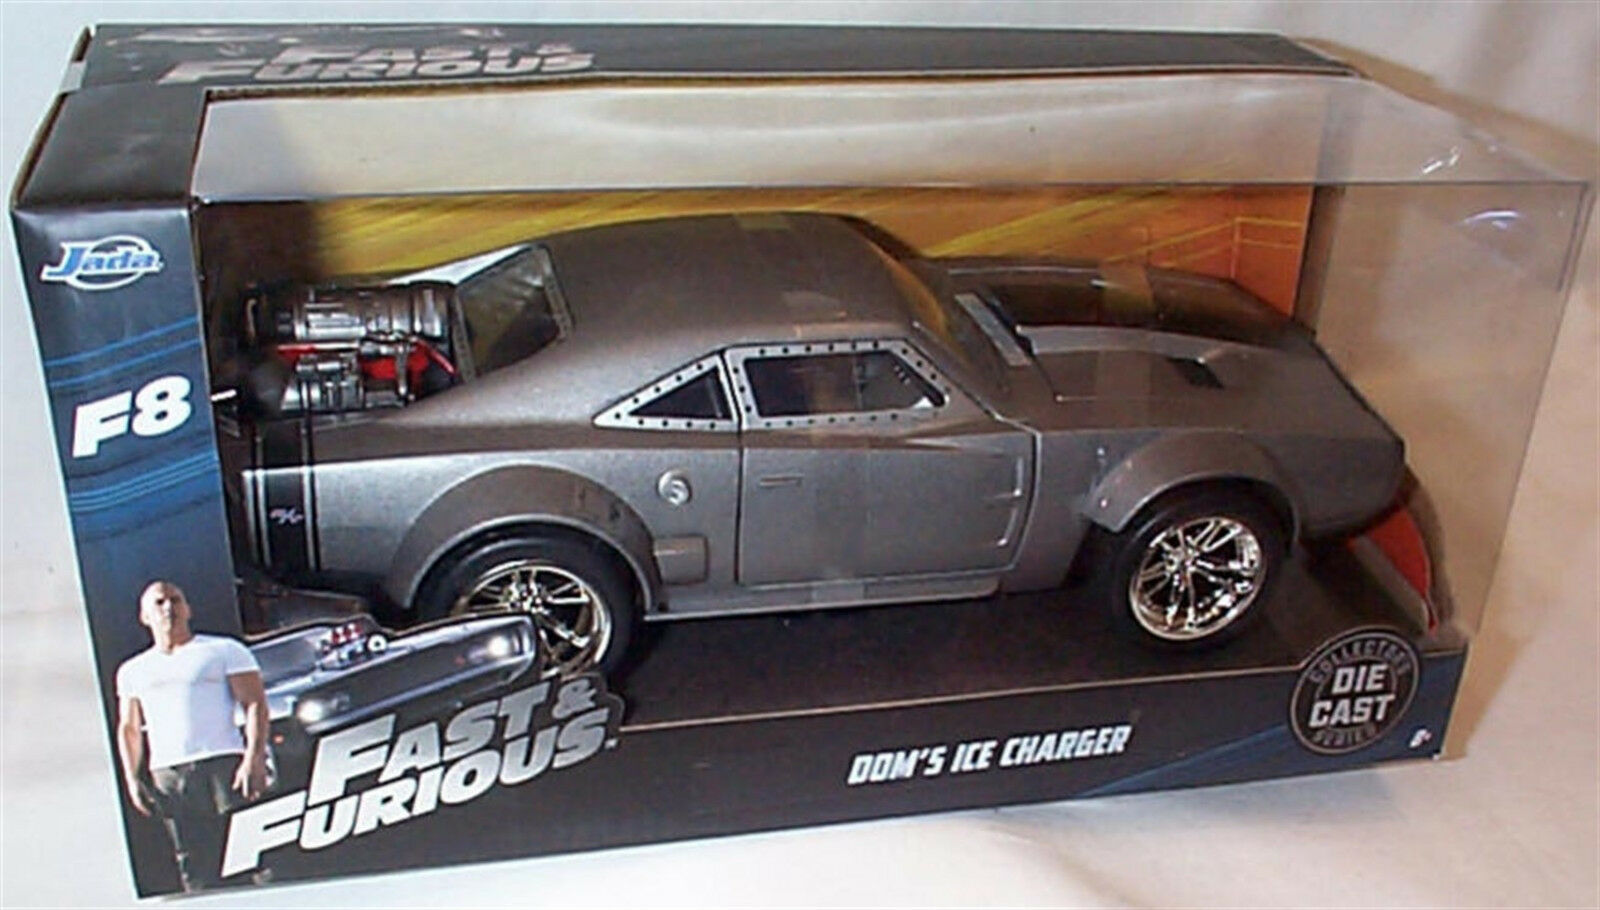 FAST & FURIOUS 8 DOM'S ICE CHARGER 1 24 SCALE DIECAST OPENING FEATURES by JADA